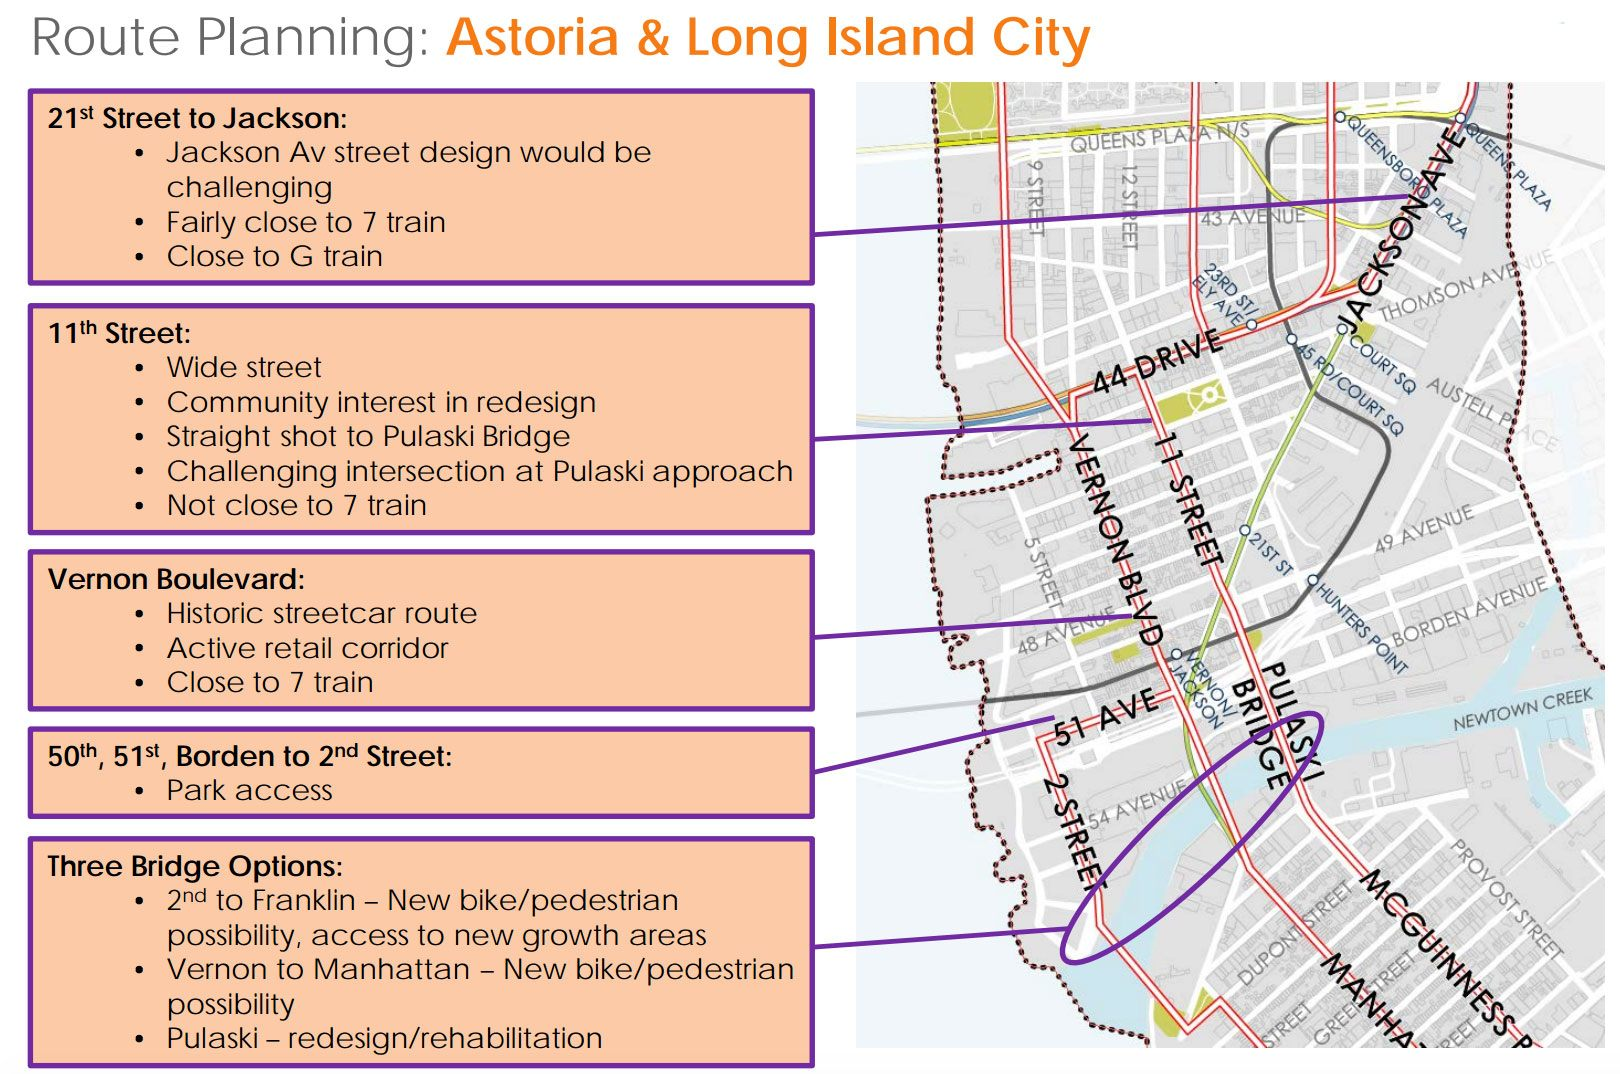 bqx-route-astoria-and-long-island-city